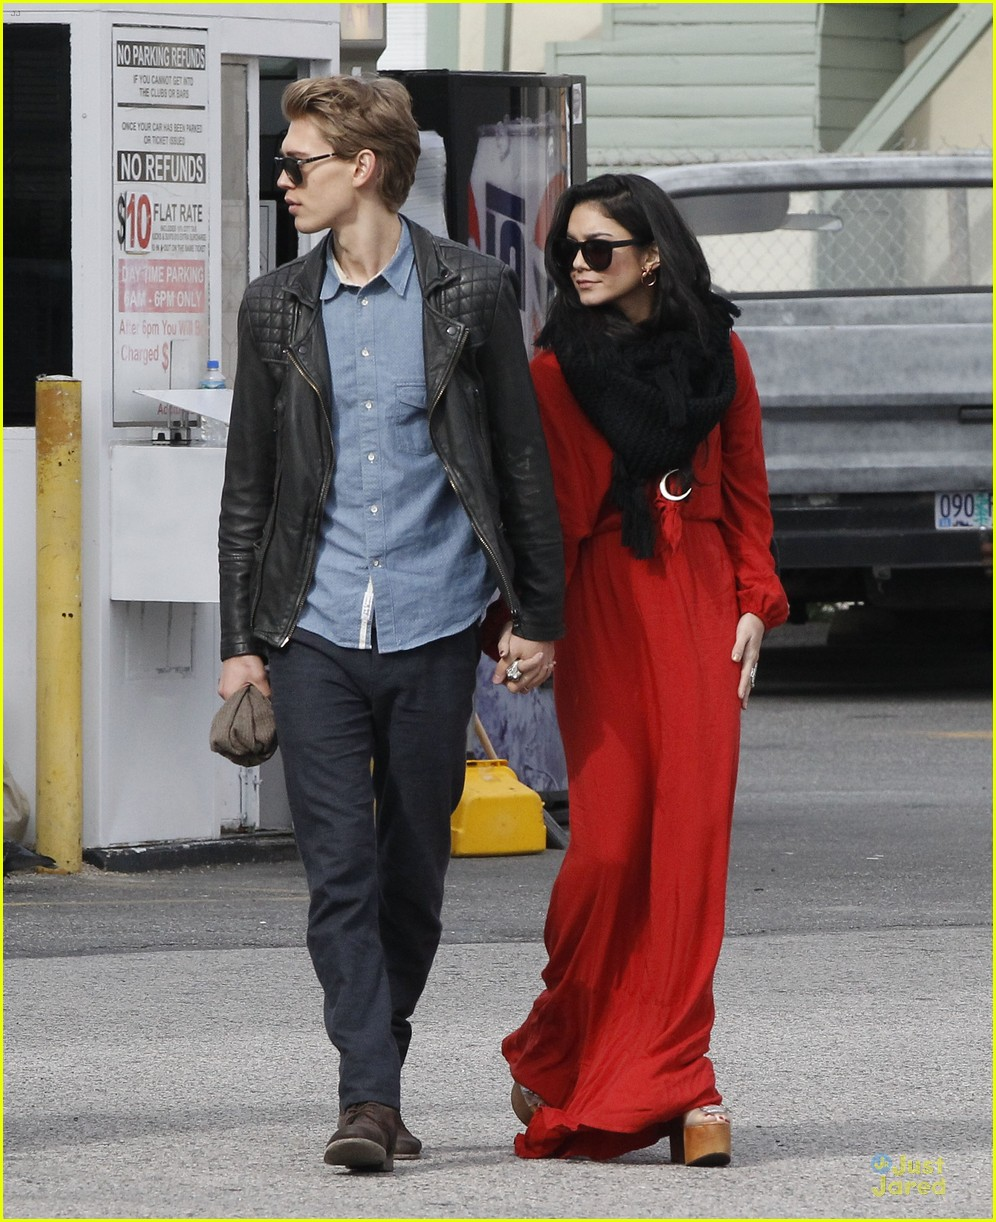 vanessa hudgens & austin butler church going couple 09